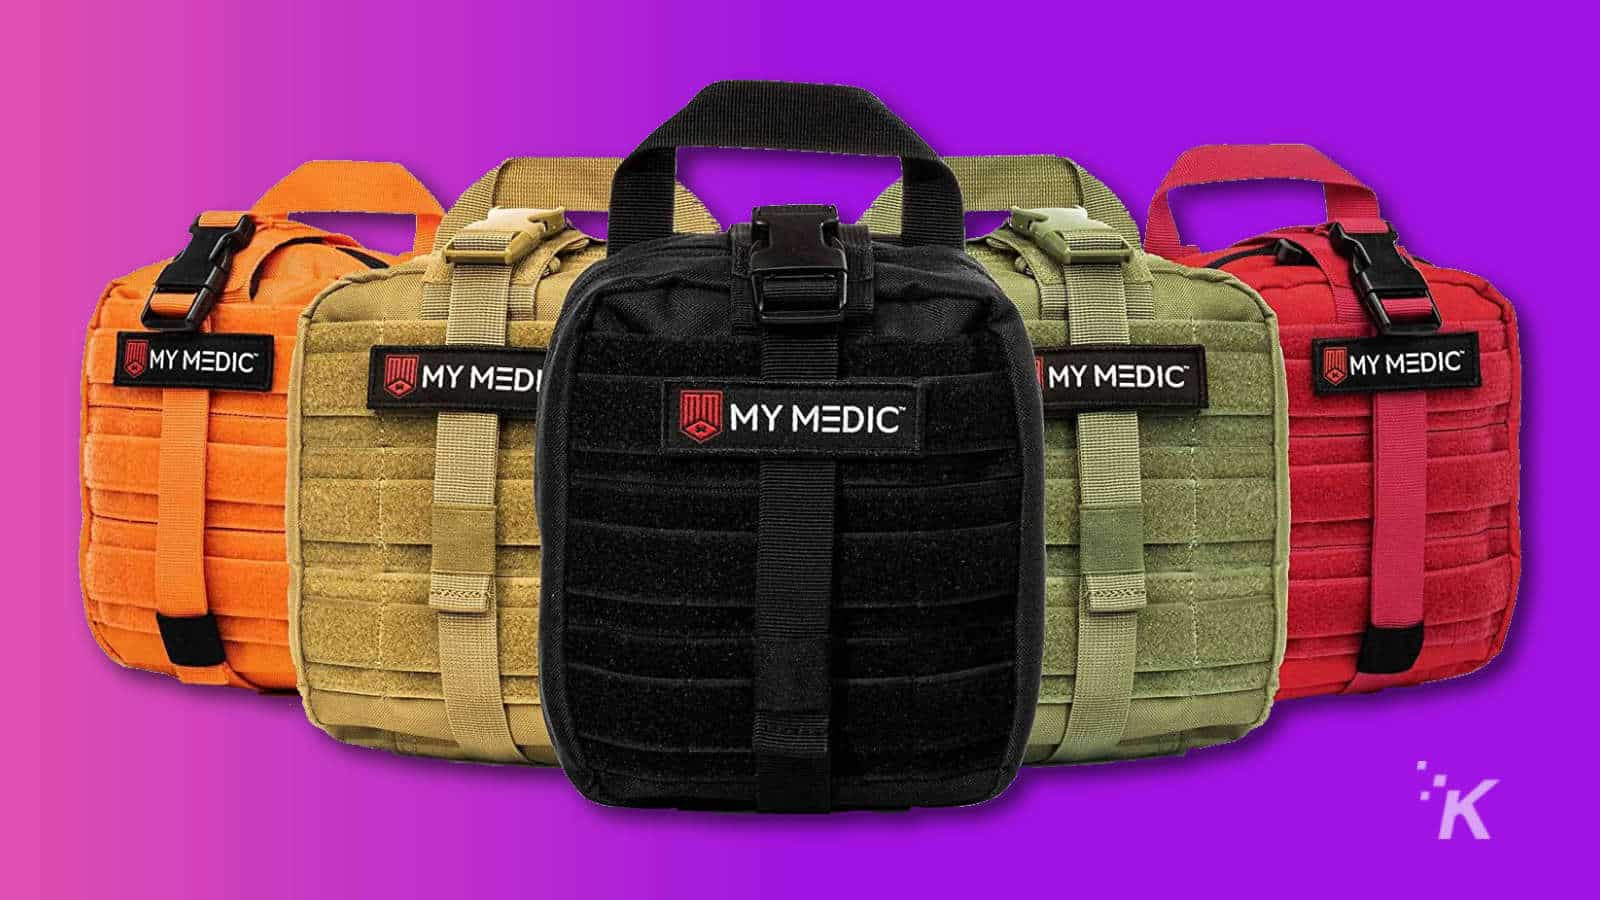 mymedic myfak first aid packs in multiple colors